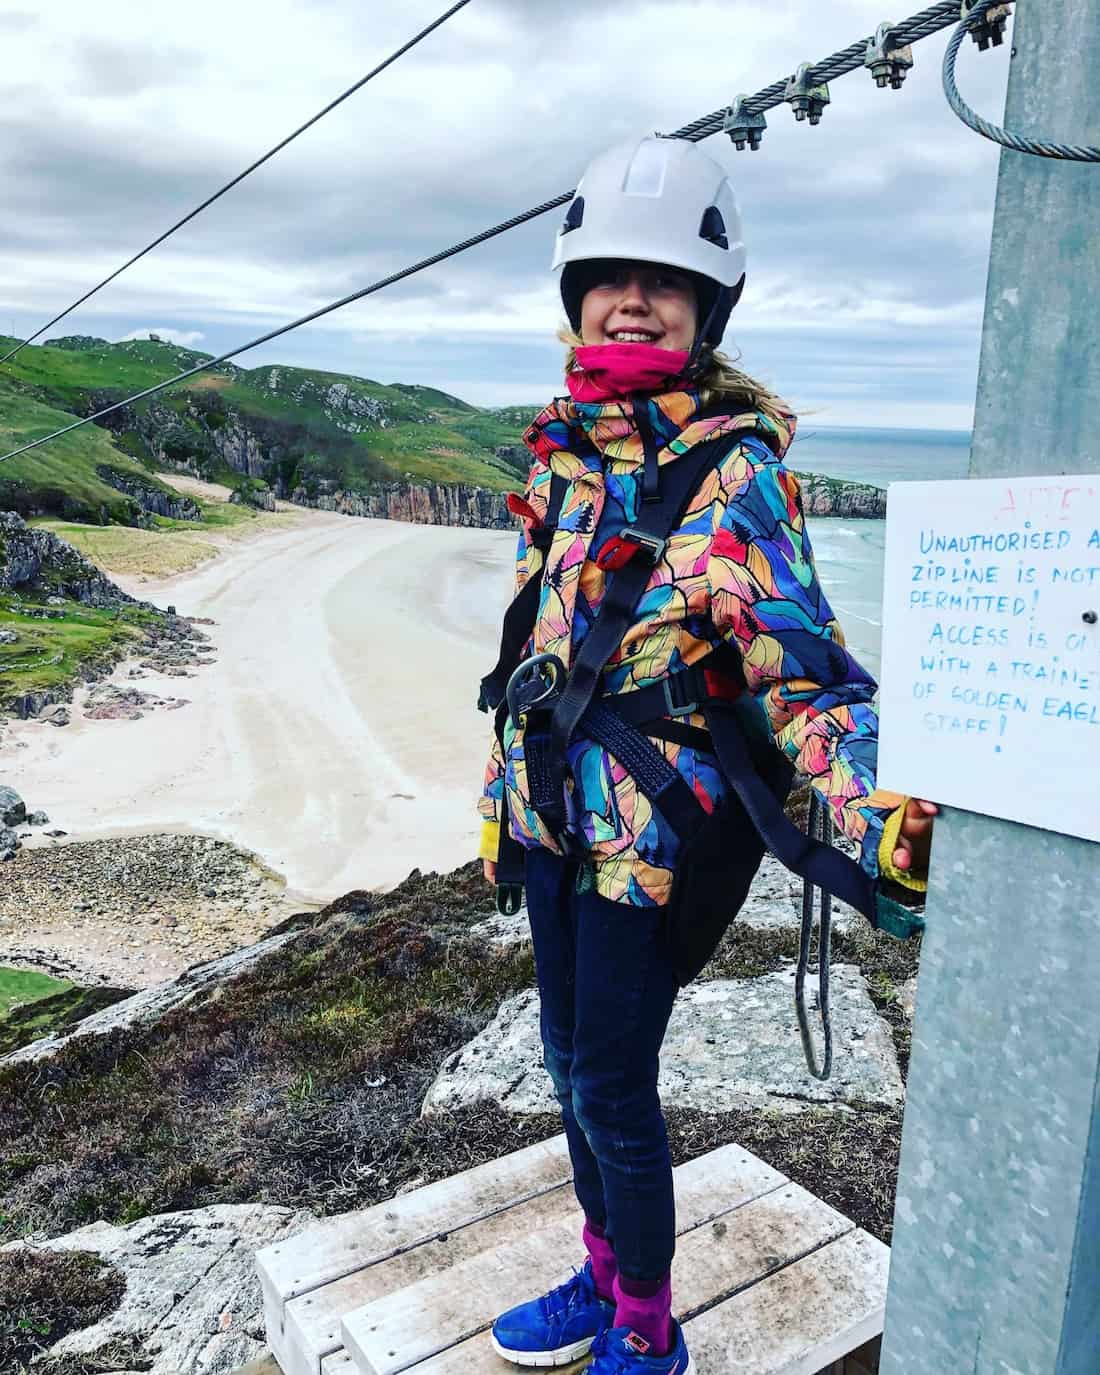 most northerly zipline in the uk